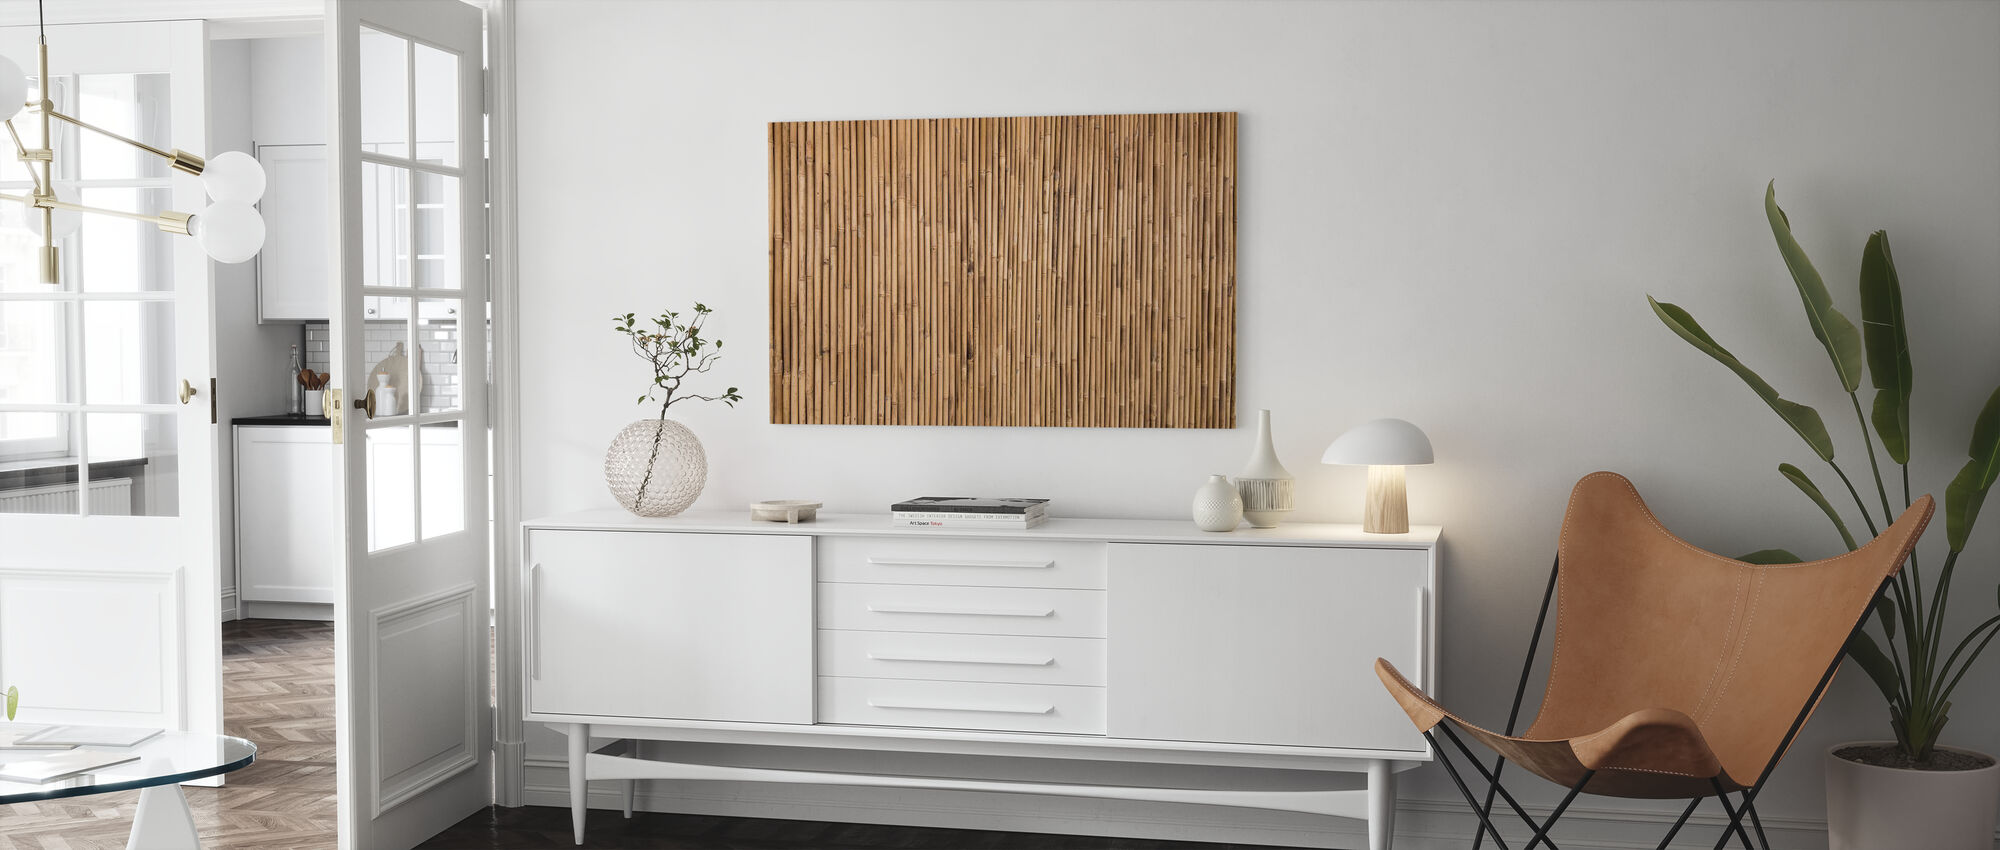 Bamboo Texture - Canvas print - Living Room